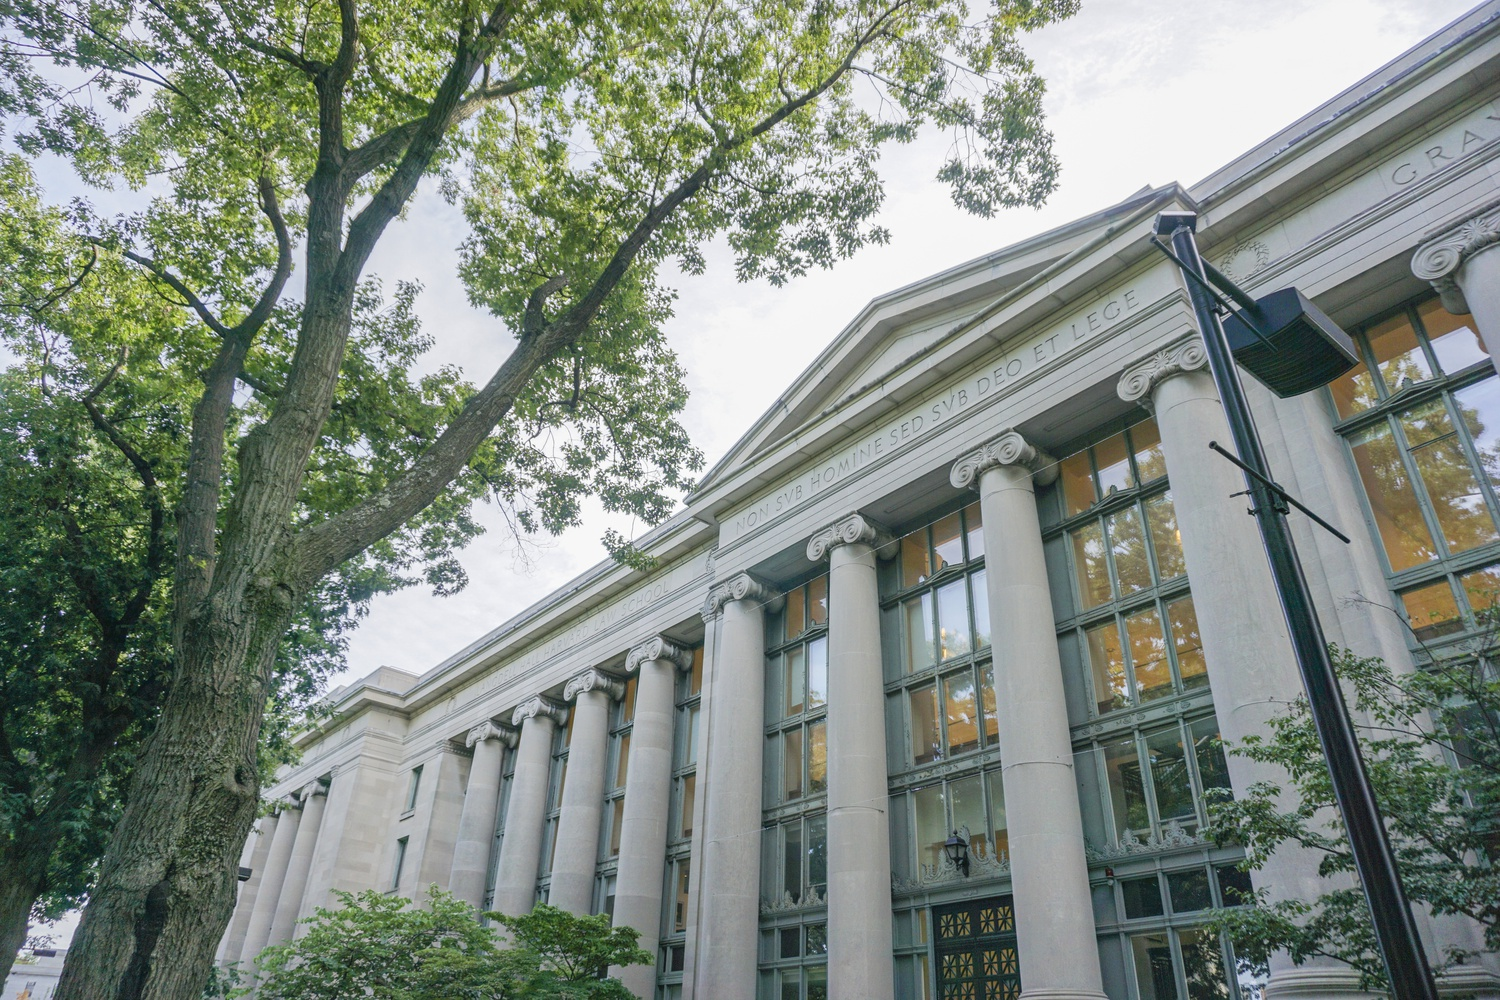 Harvard Law School Professor Adrian C. Vermeule '90 sparked outrage online after posting a tweet on Thursday comparing attendees of the Summit on Principle Conservatism to concentration camp detainees.